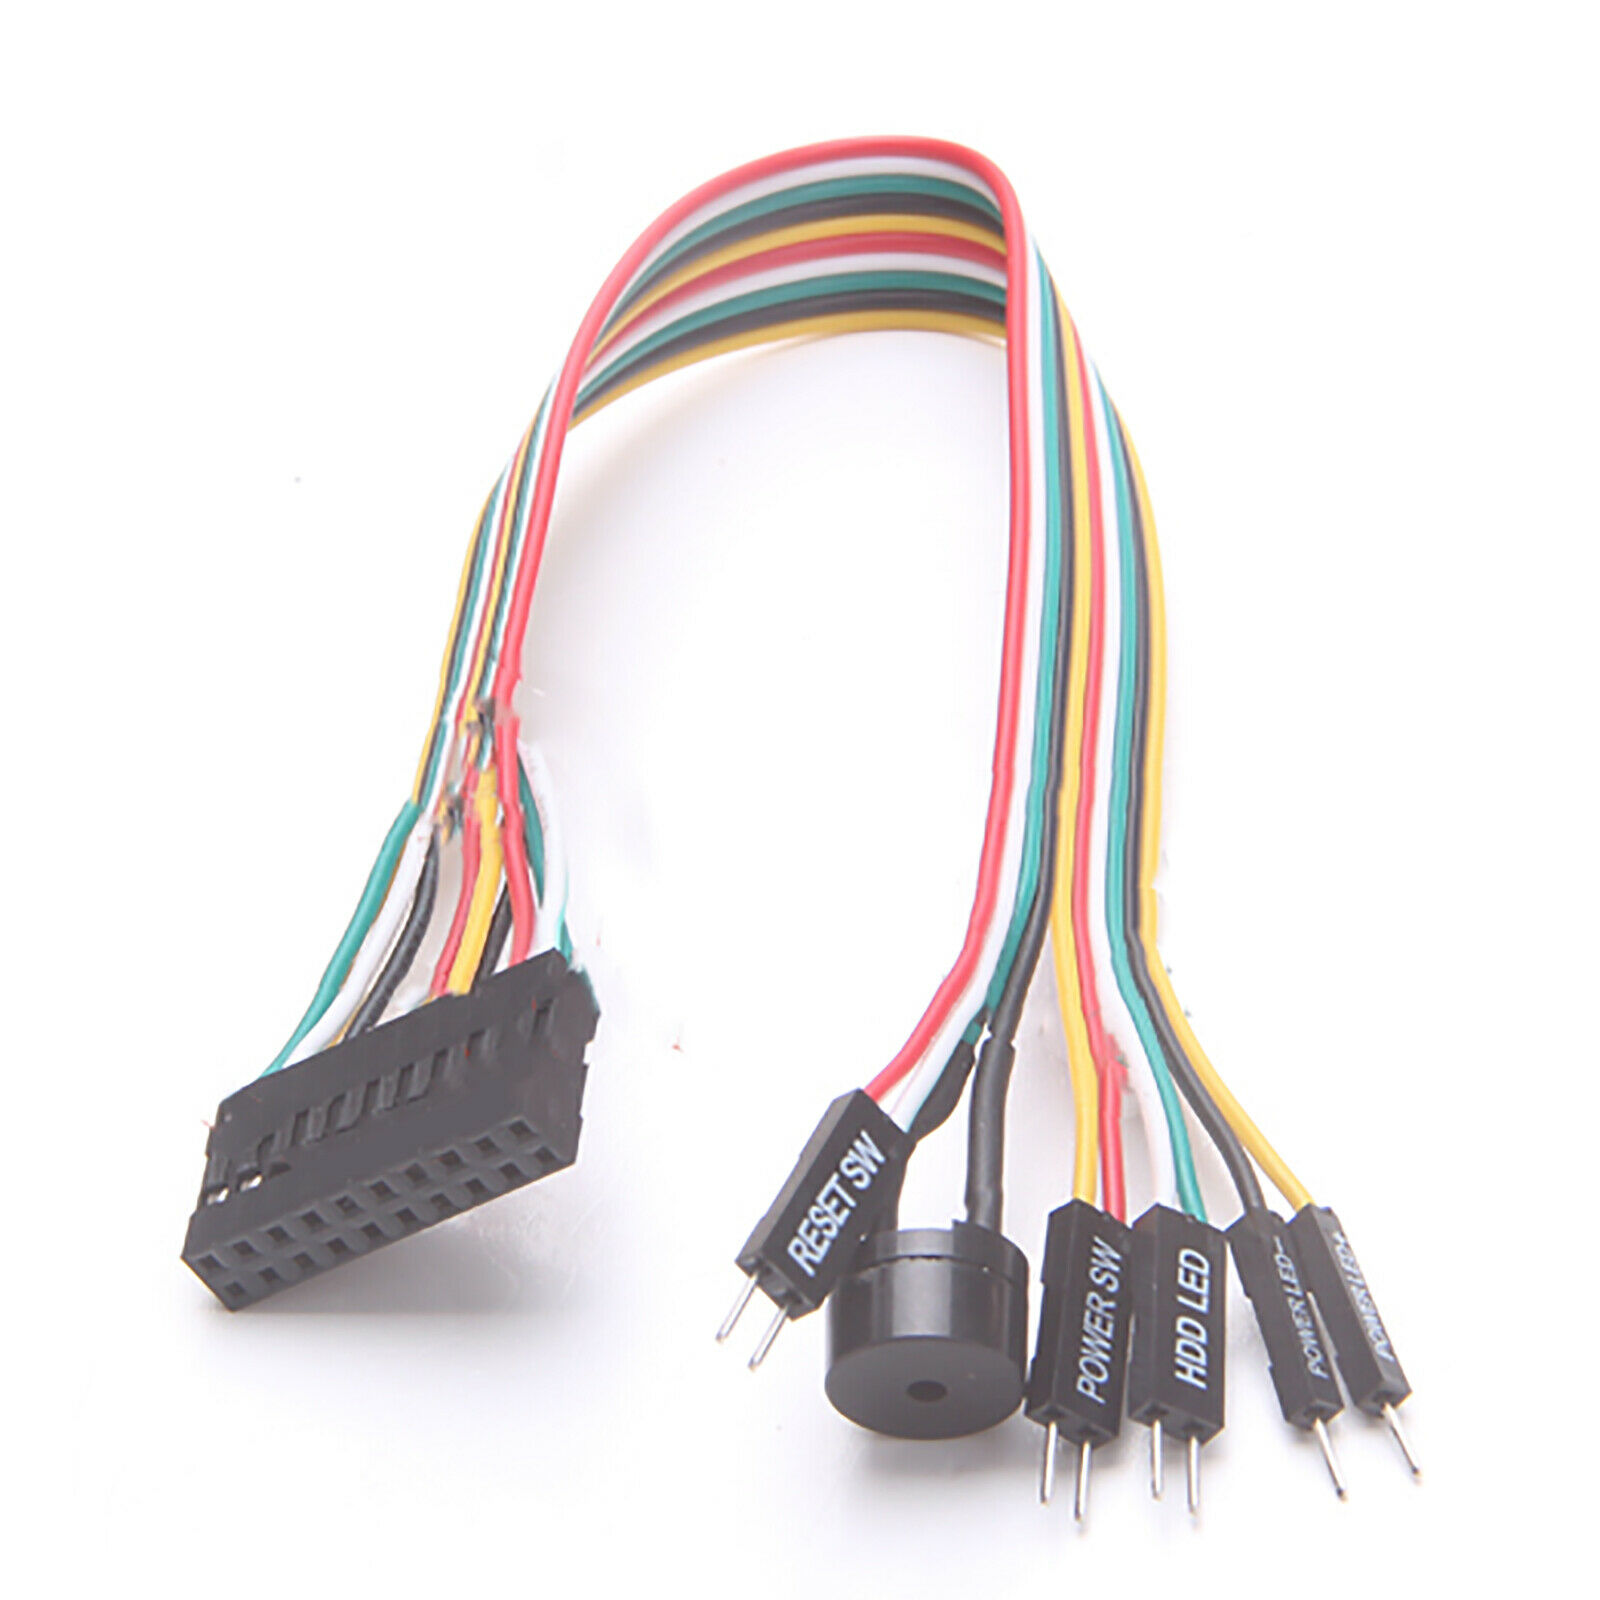 20cm Jumper Line Extension Cable Cord Connector For ASUS Q-Connector Motherboard